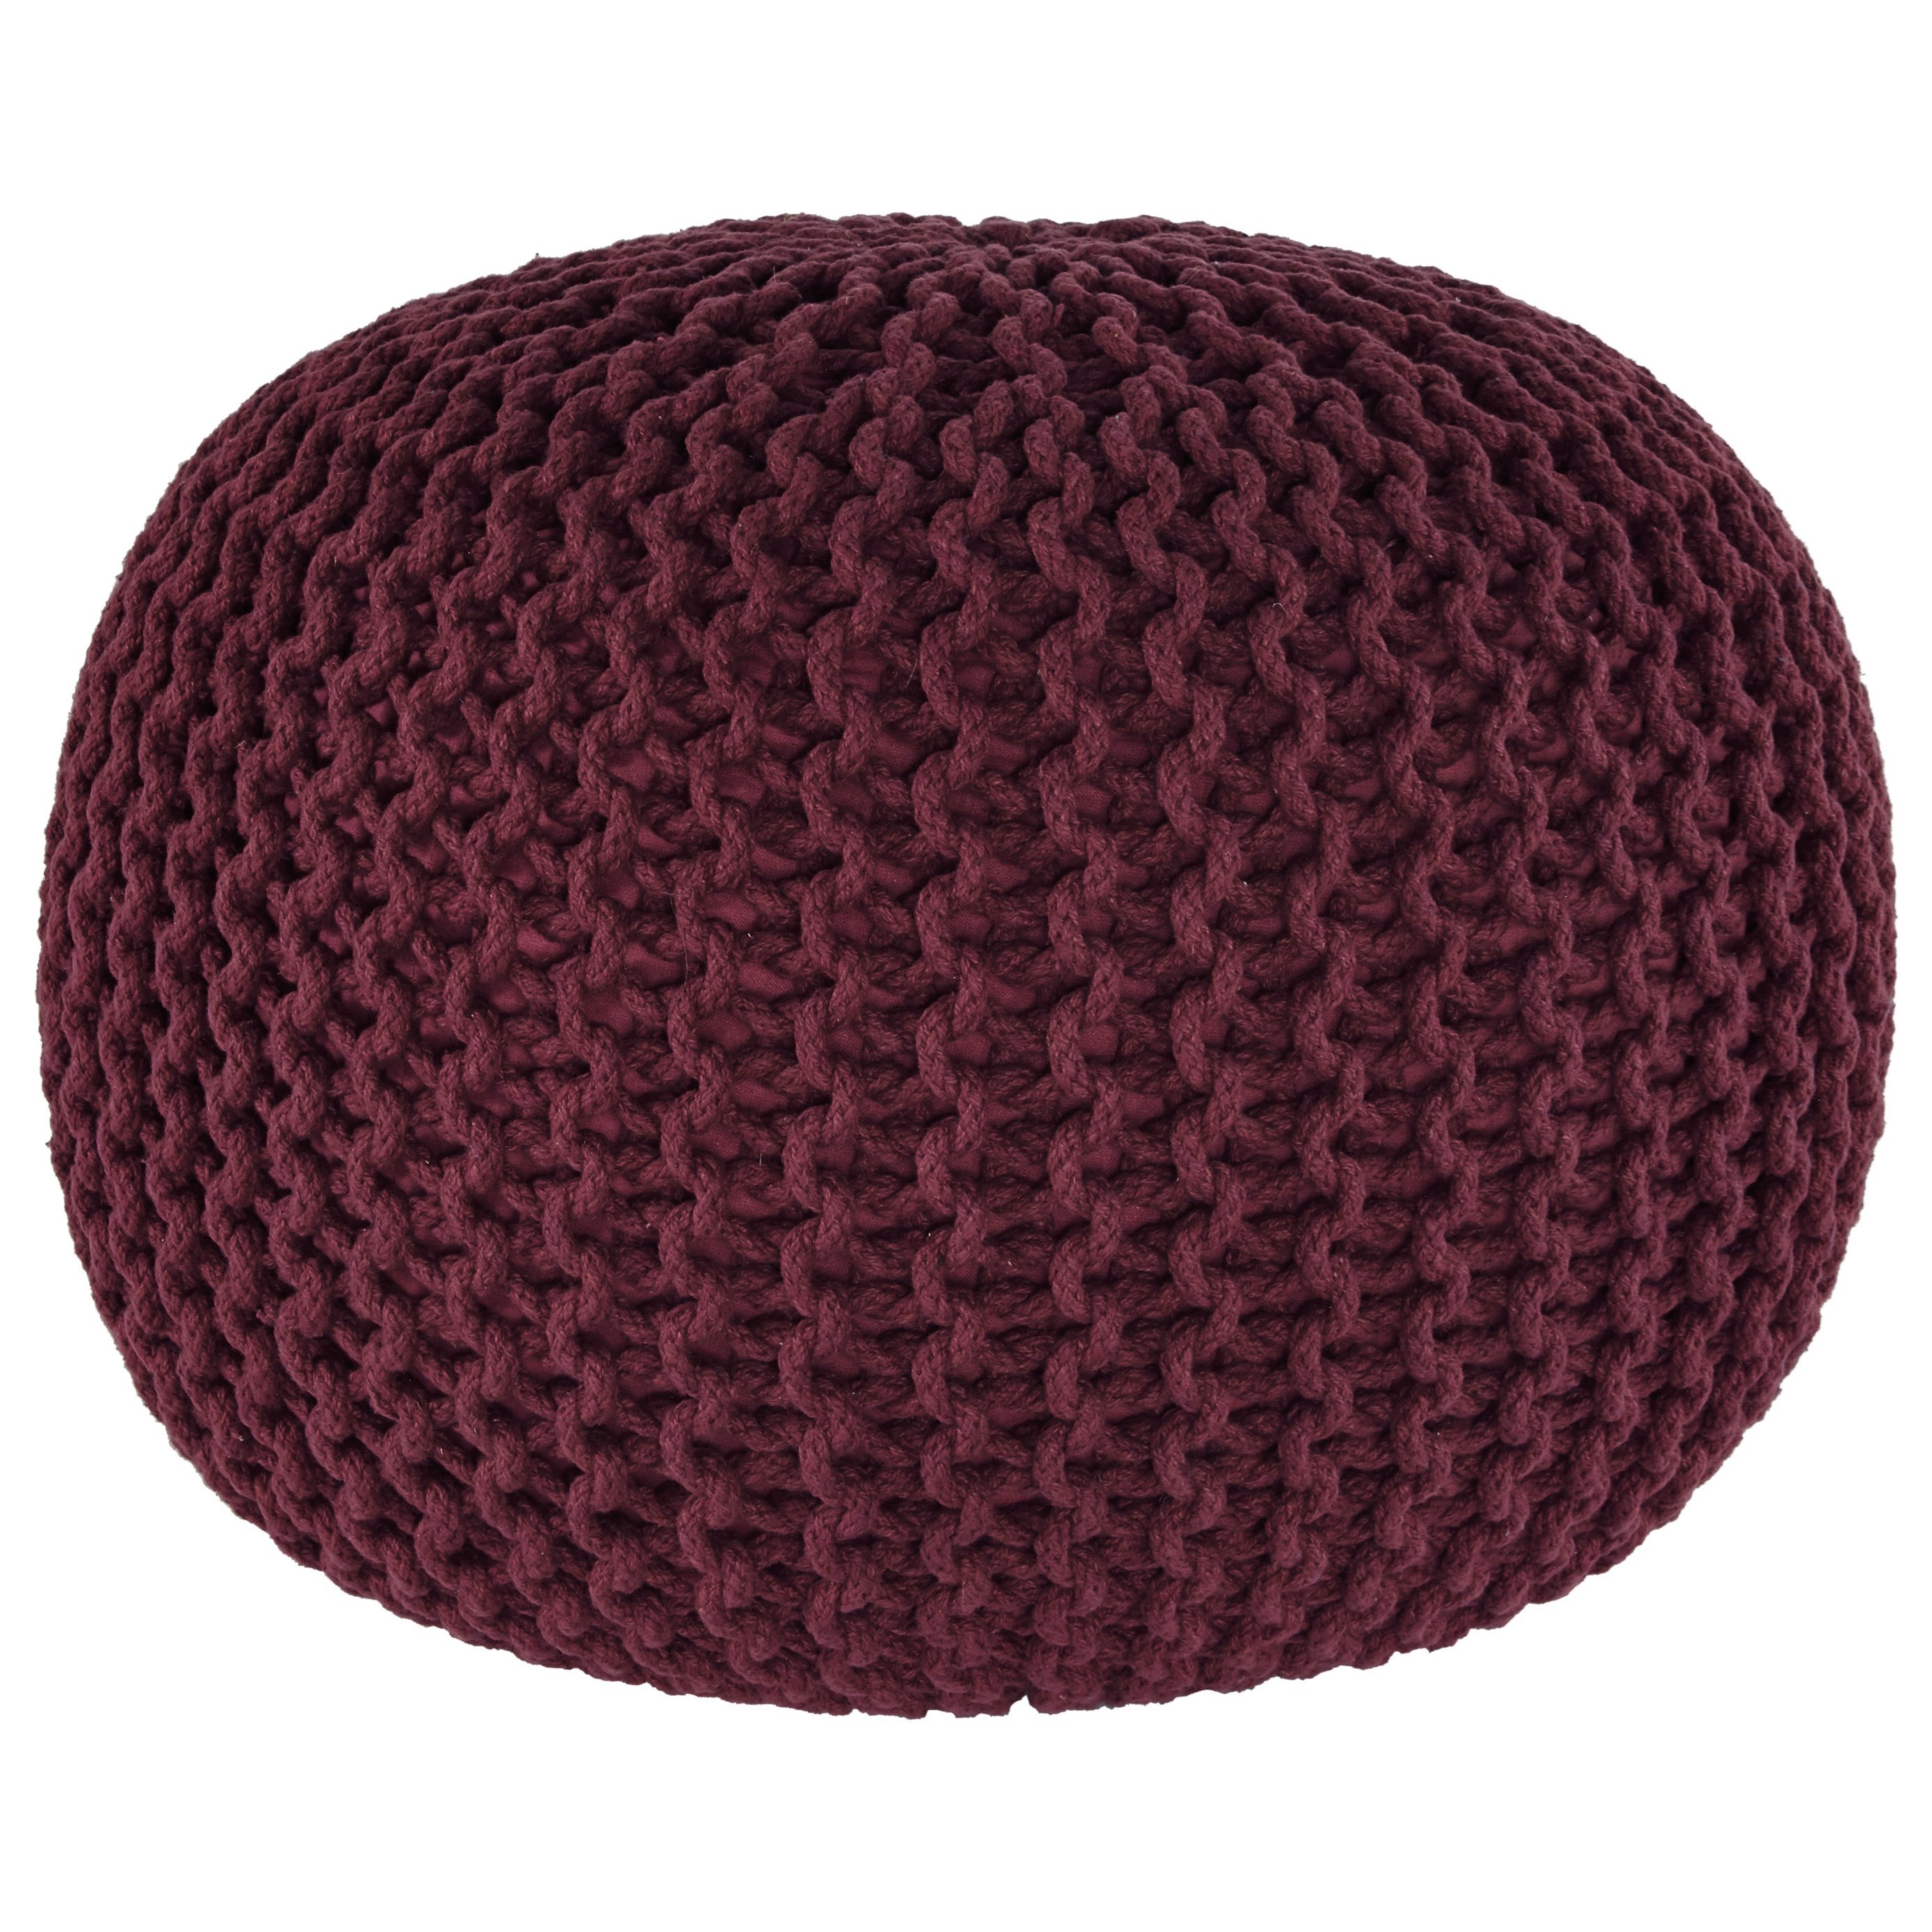 Signature design by ashley poufs nils maroon pouf rotmans poufs worcester boston ma - Design pouf ...